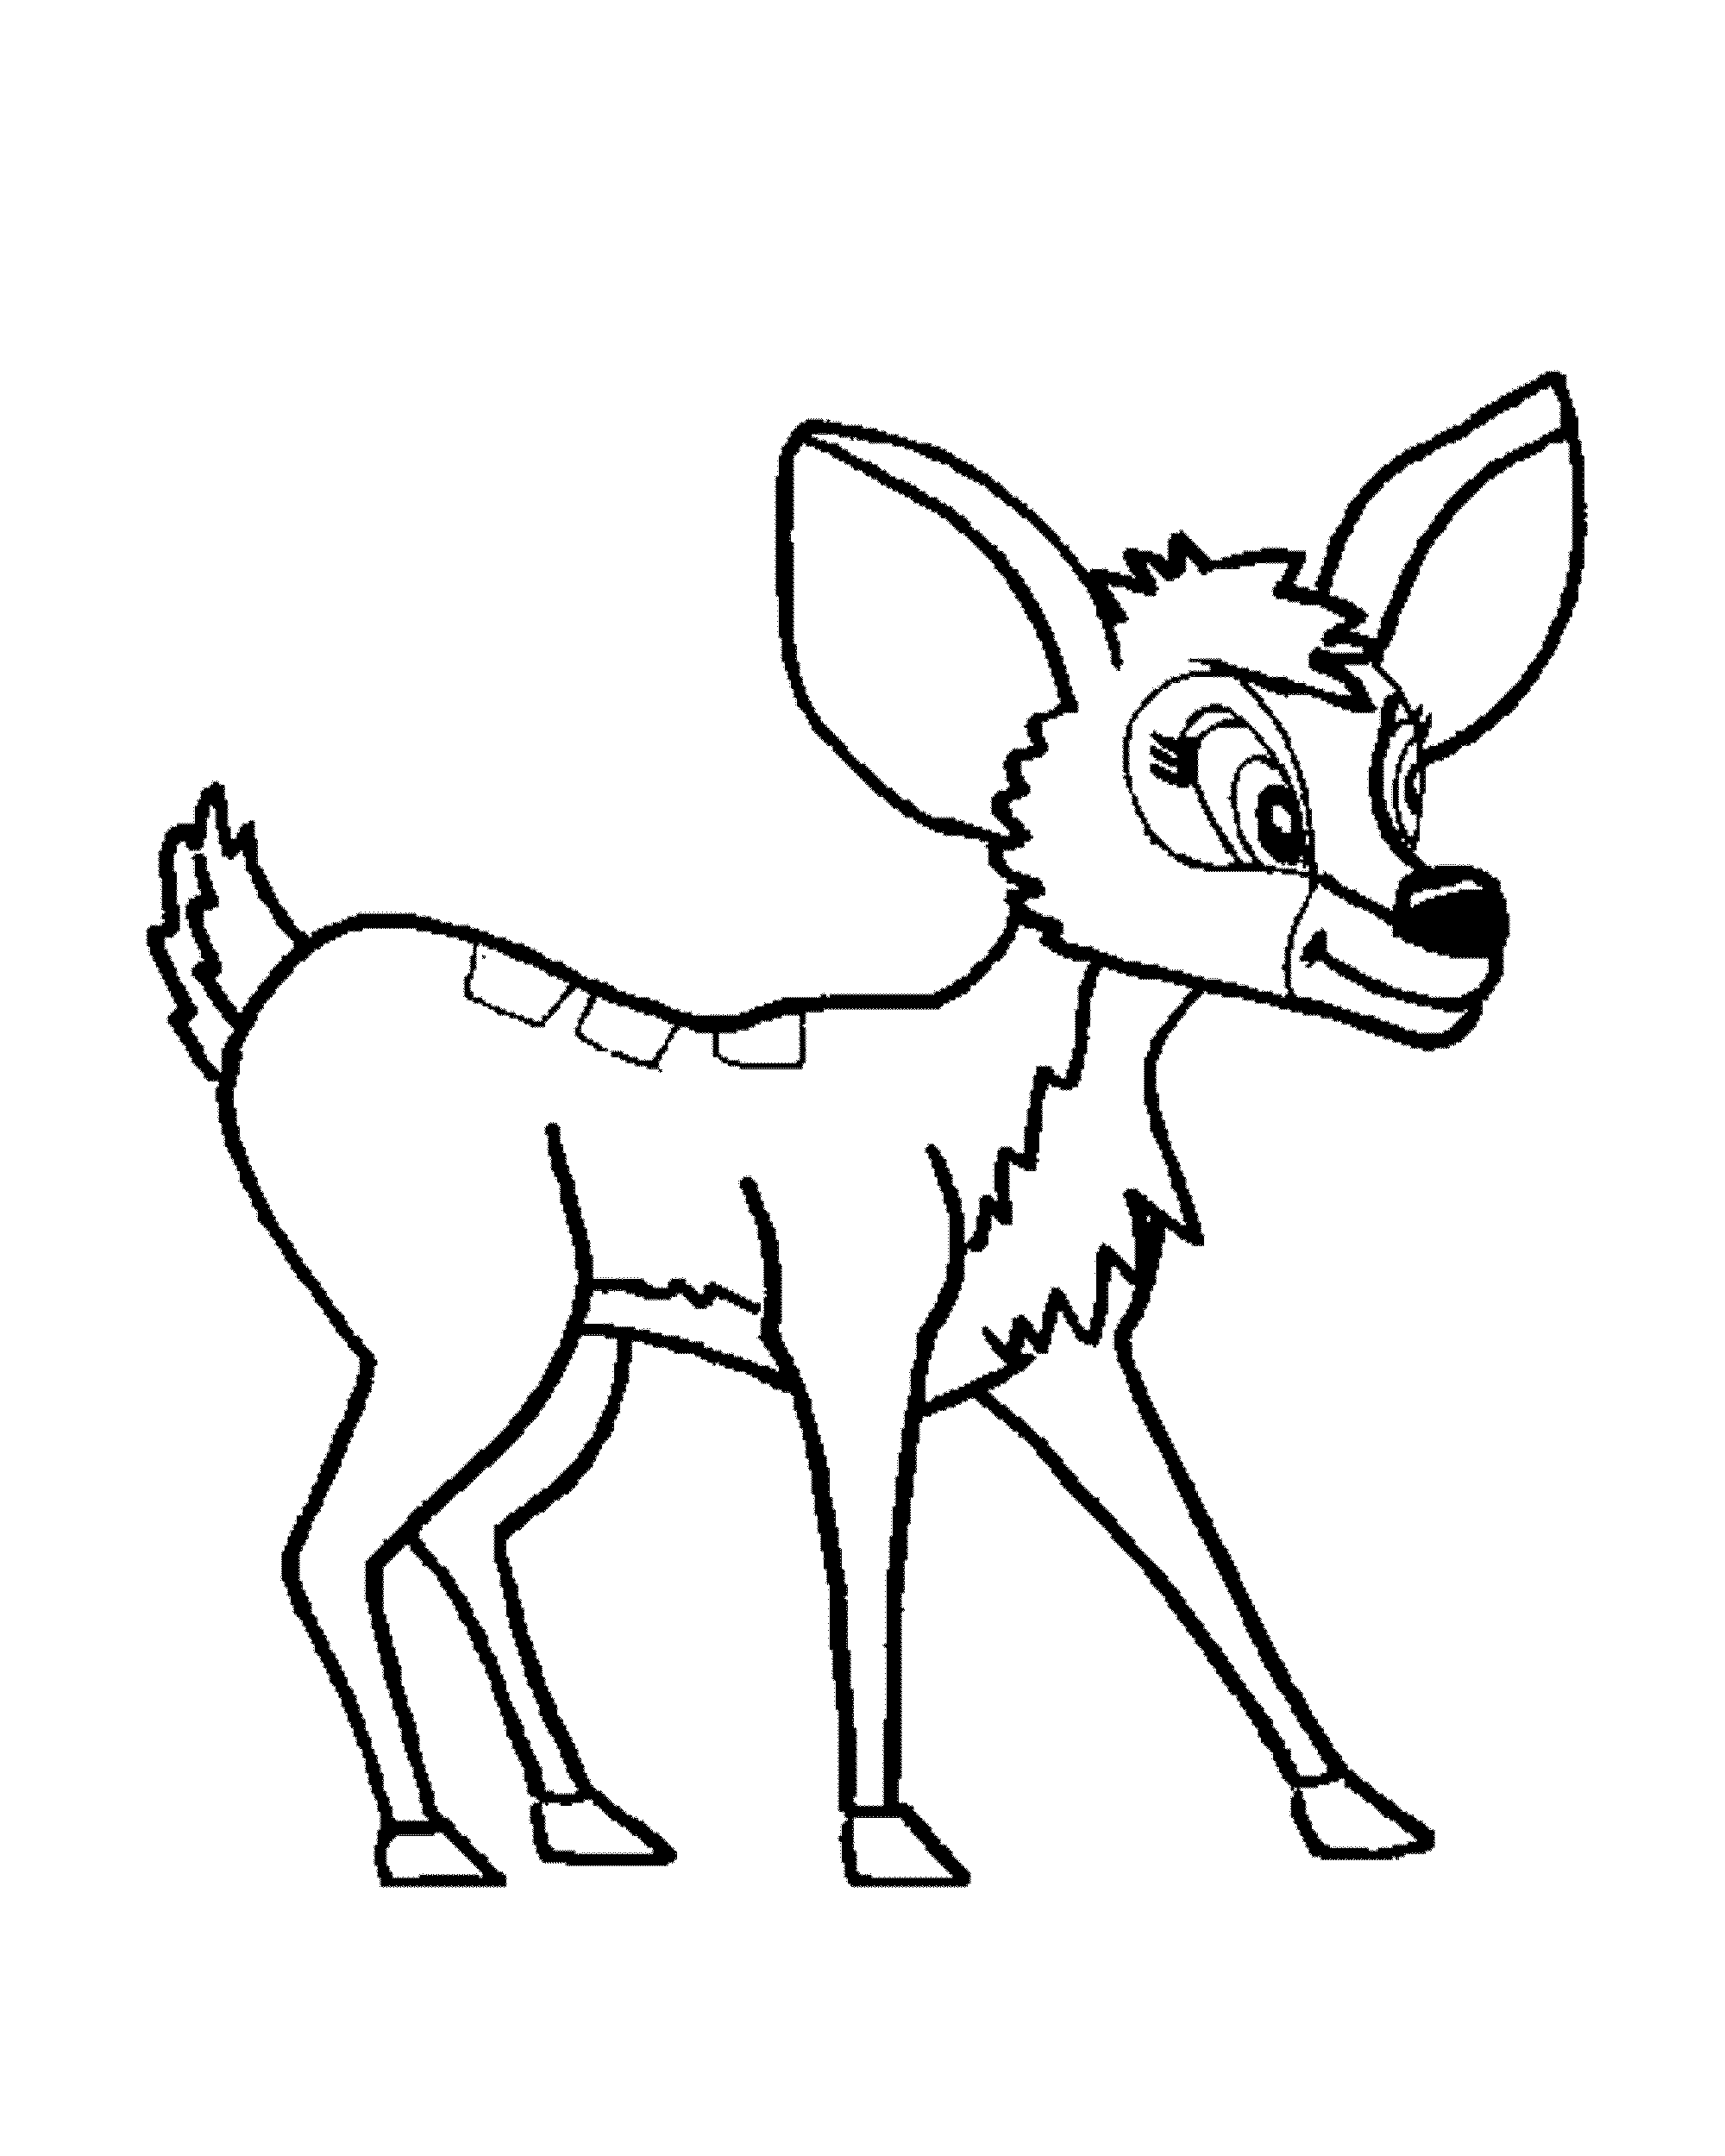 pictures of deers to color 45 deer templates animal templates free premium color deers to pictures of